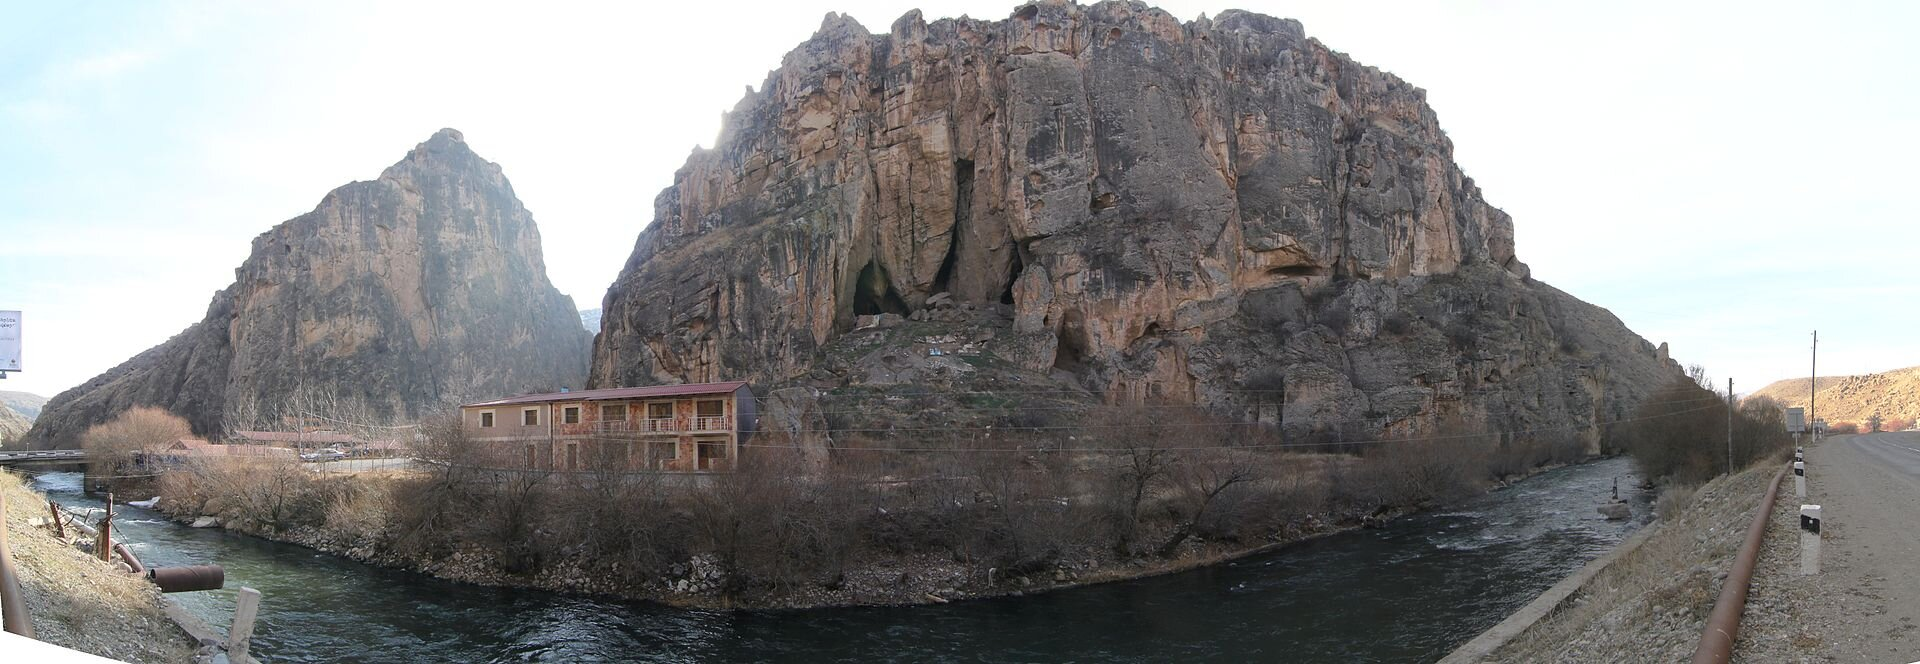 The Areni-1 cave, site of the oldest winery known to humankind (Armenia) - Serouj, WIkiCommons